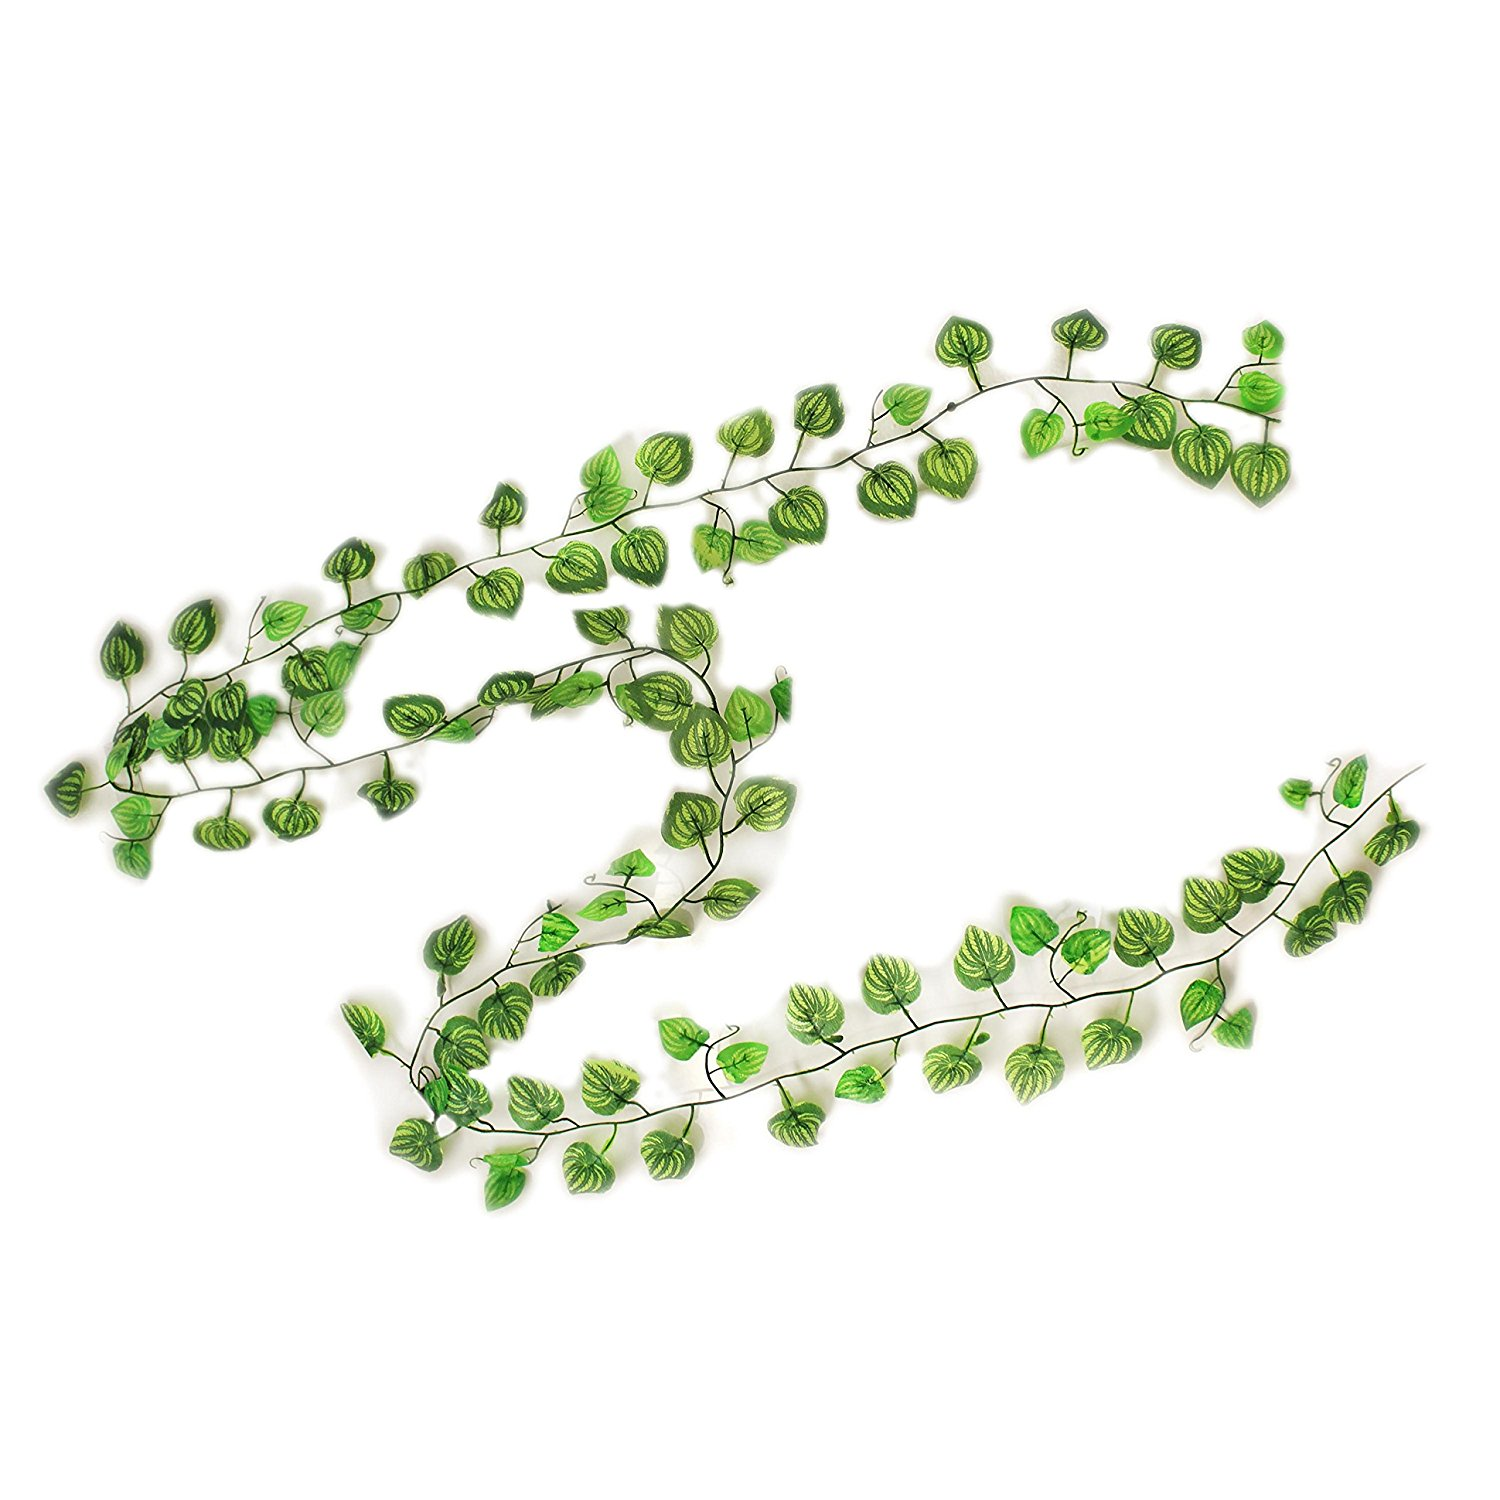 10PL008 Green Artificial Bright Devil's Ivy Garland Decoration, Pack of 10 7.5'